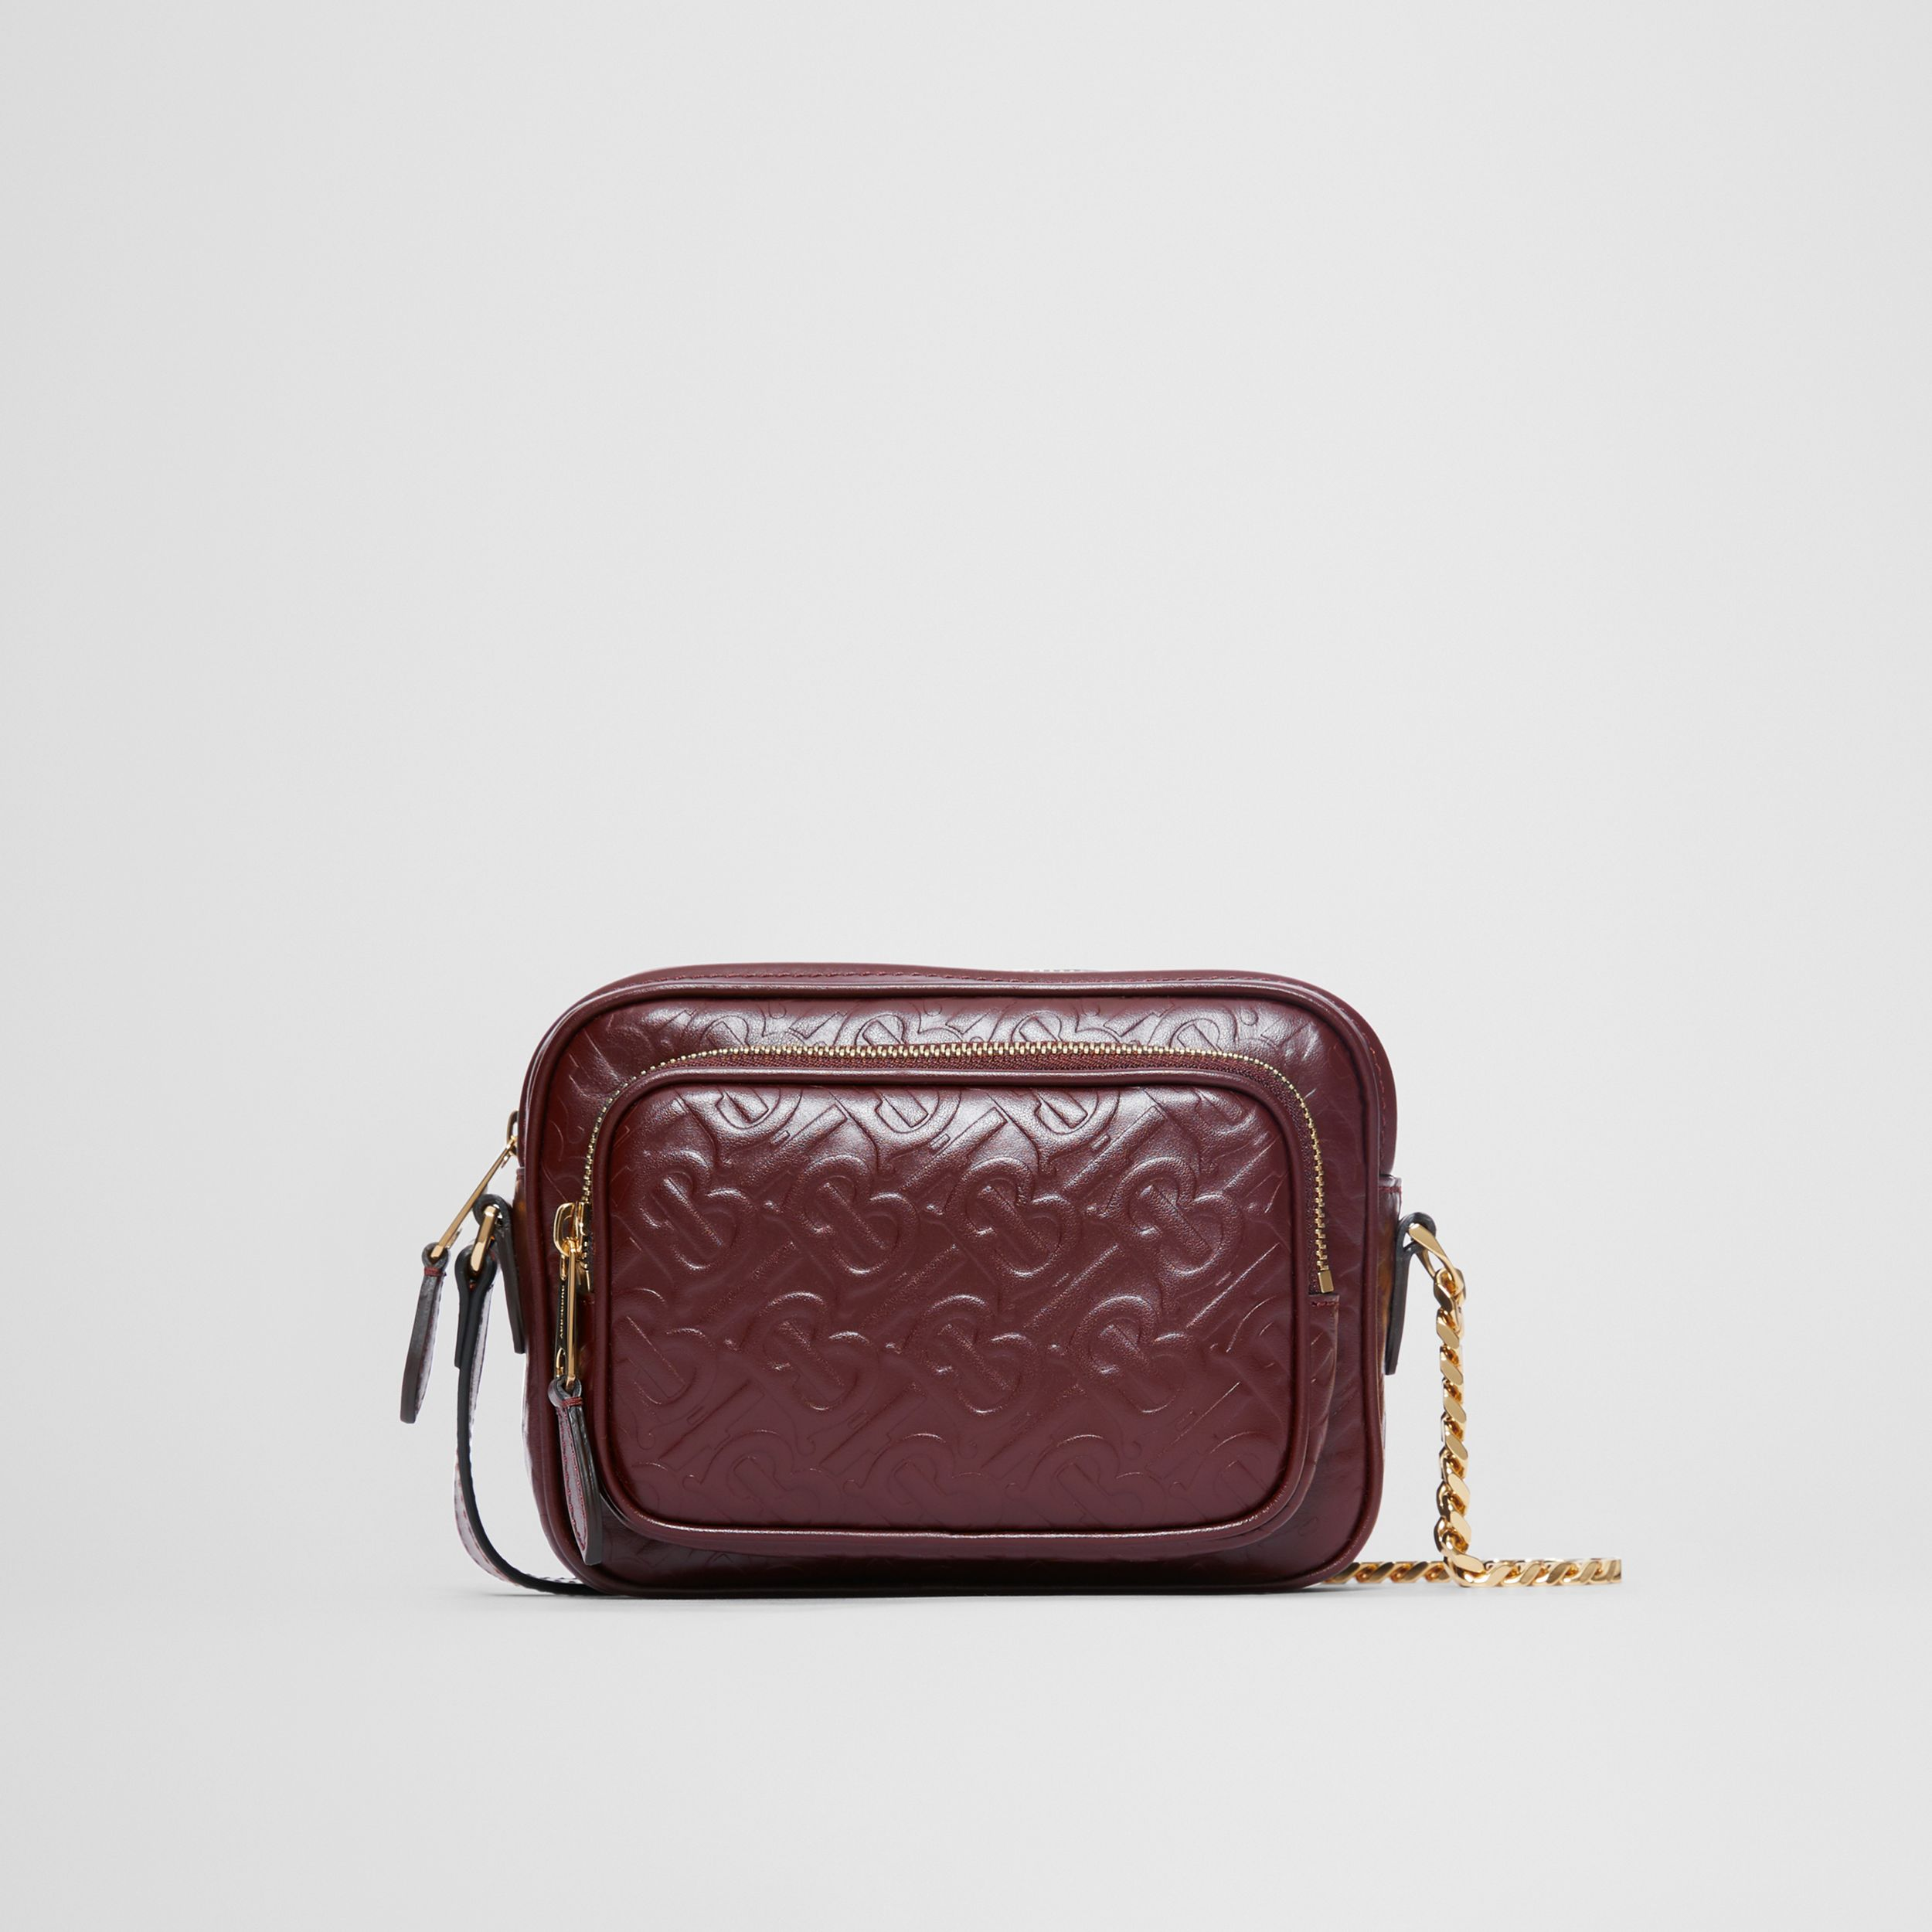 Monogram Leather Camera Bag in Dark Burgundy - Women | Burberry - 1